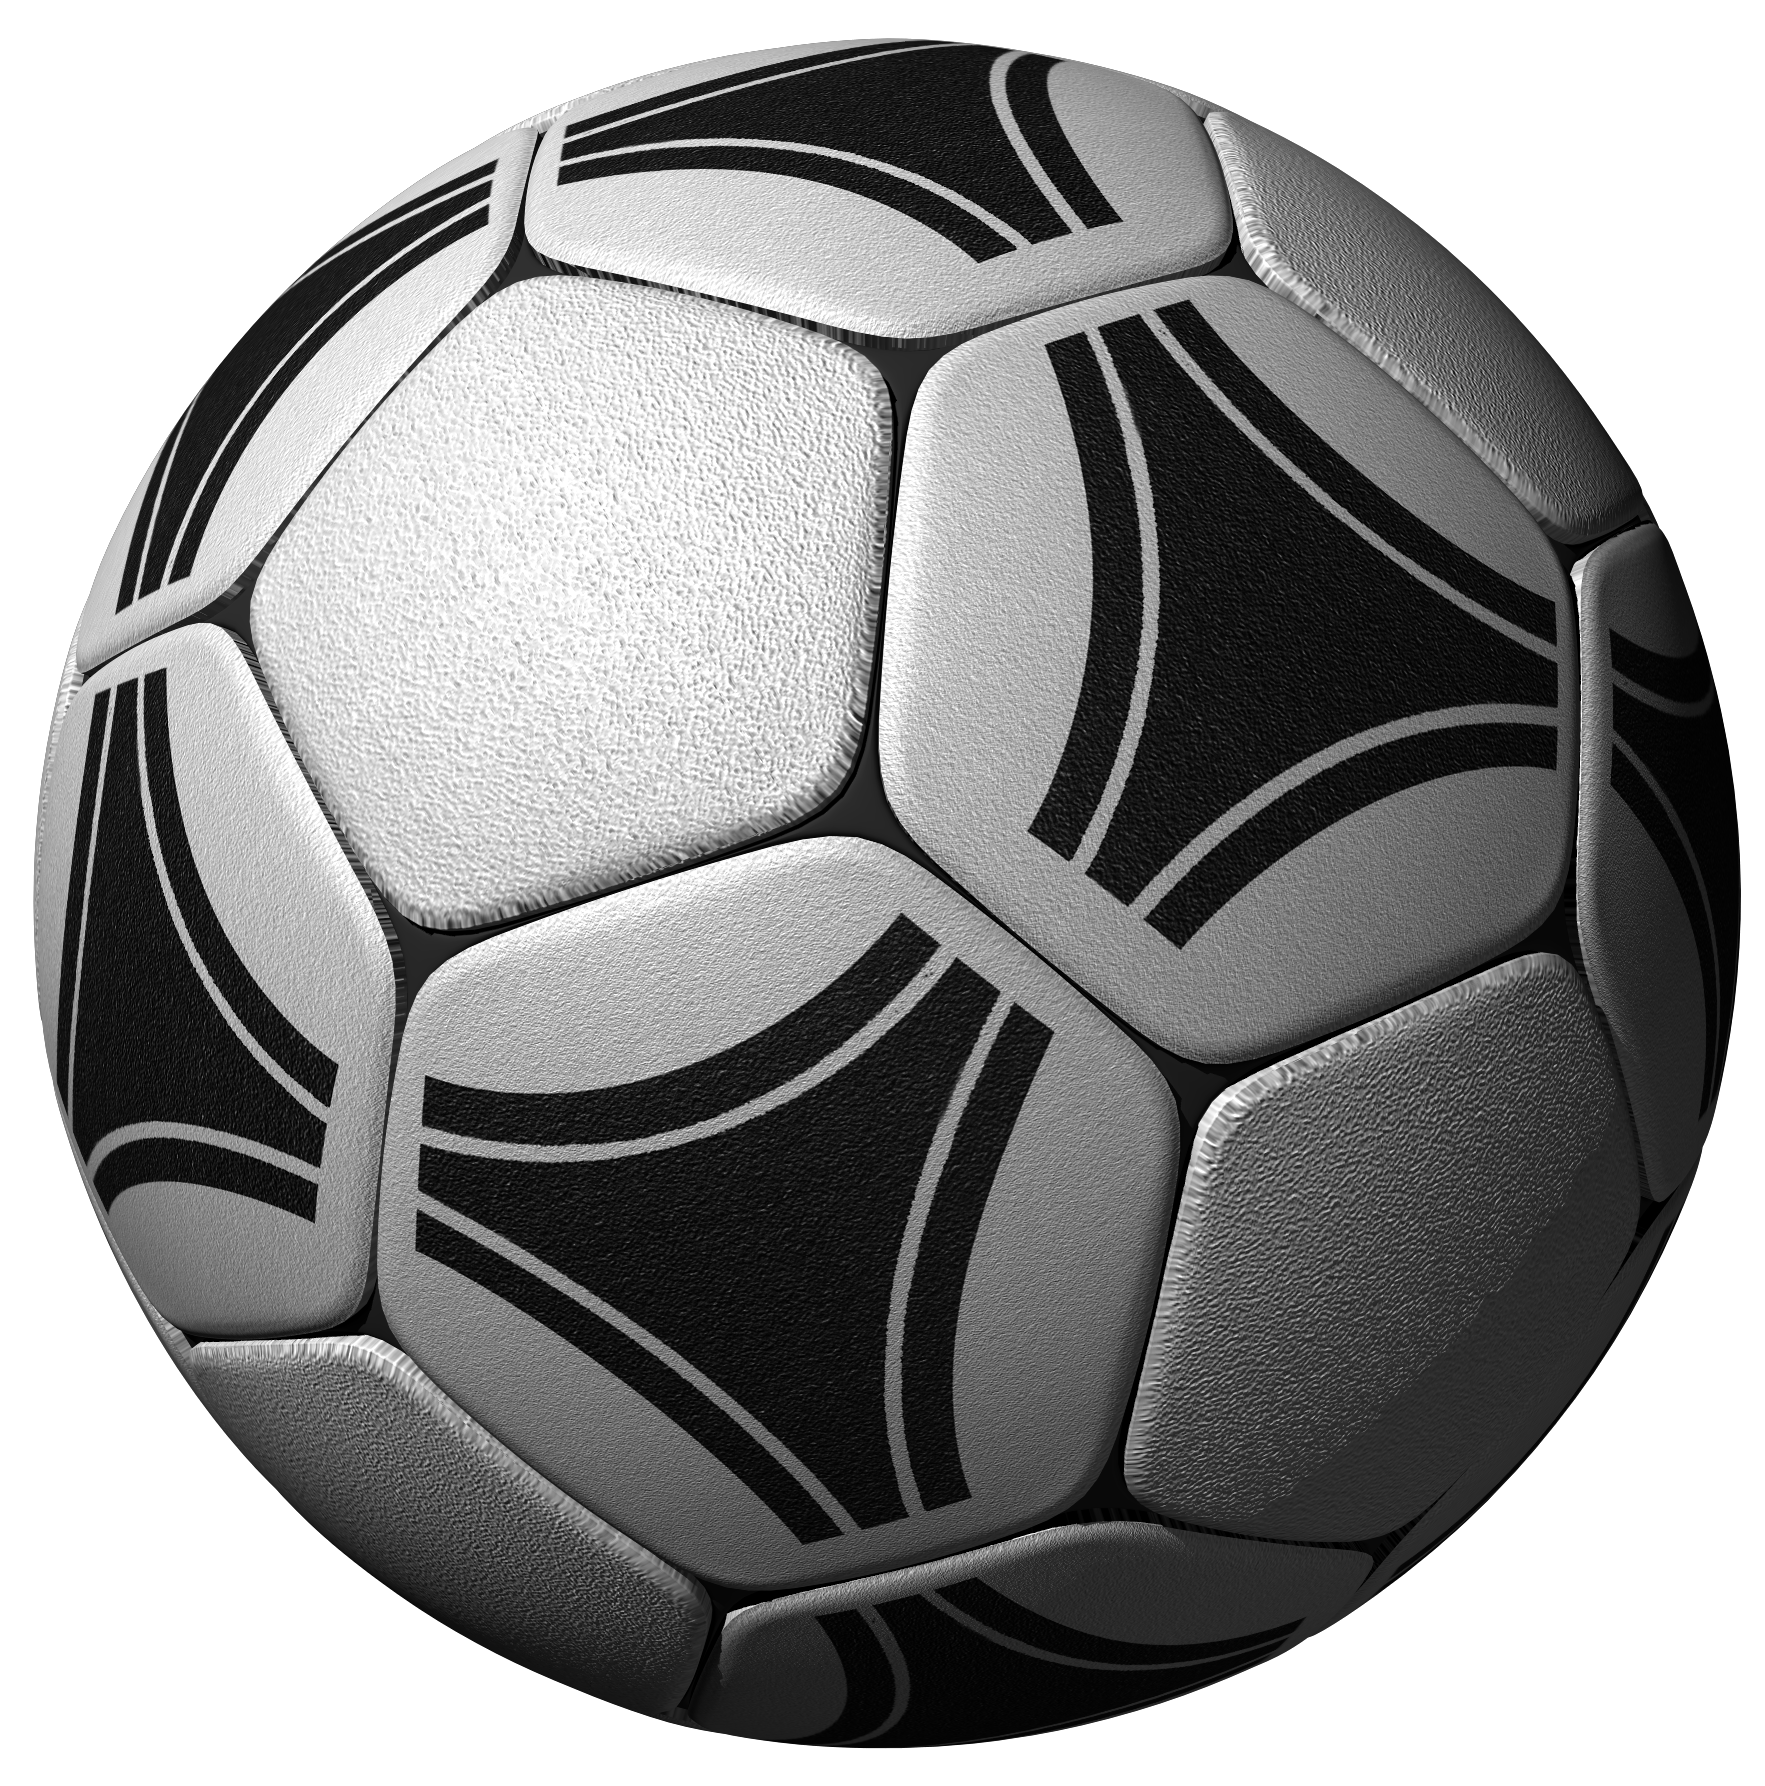 Soccer ball png image. Clipart picture clipartly com